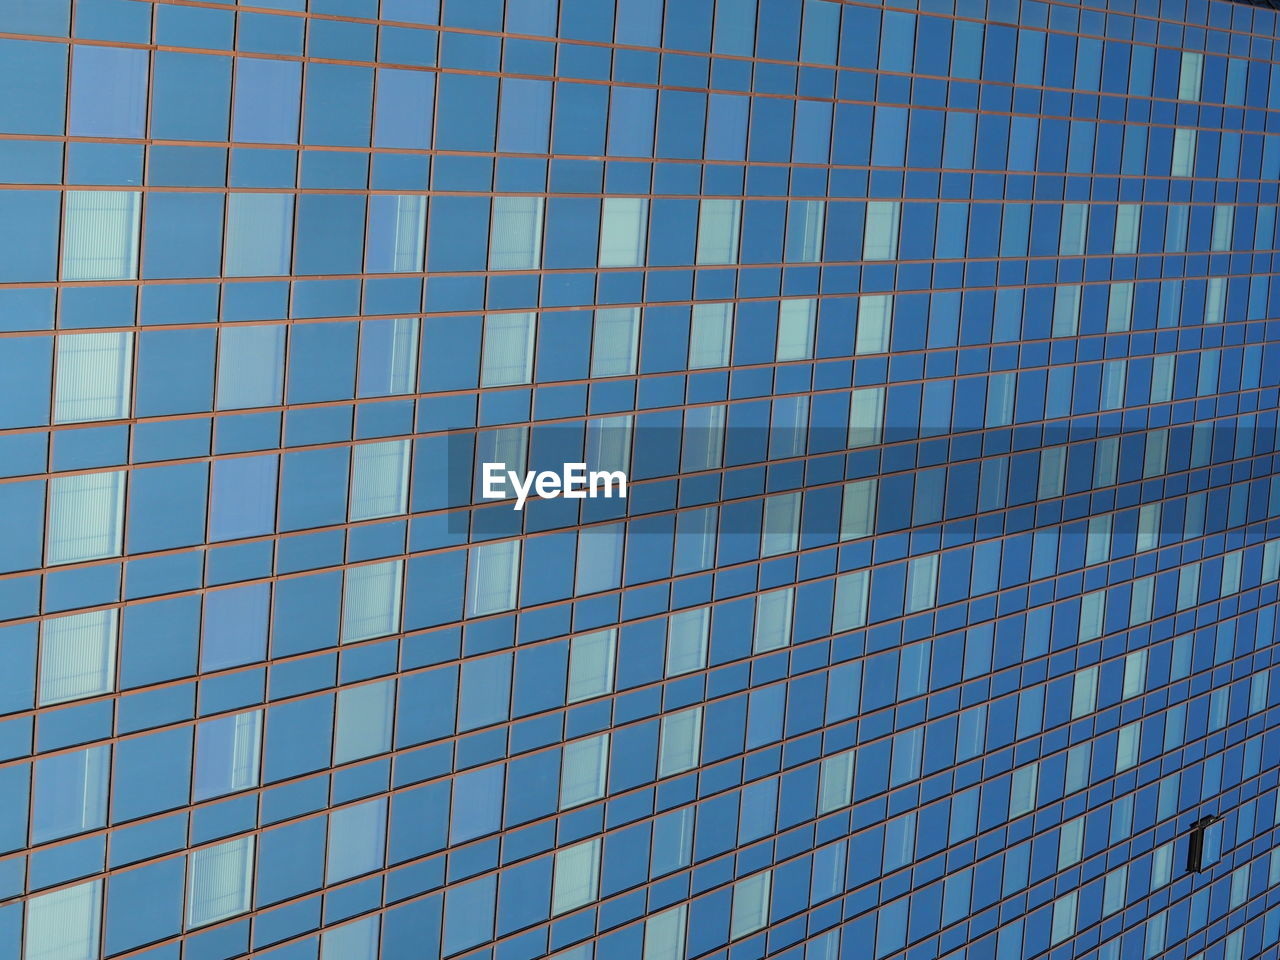 full frame, backgrounds, architecture, pattern, window, no people, blue, low angle view, built structure, day, building exterior, outdoors, modern, clear sky, sky, close-up